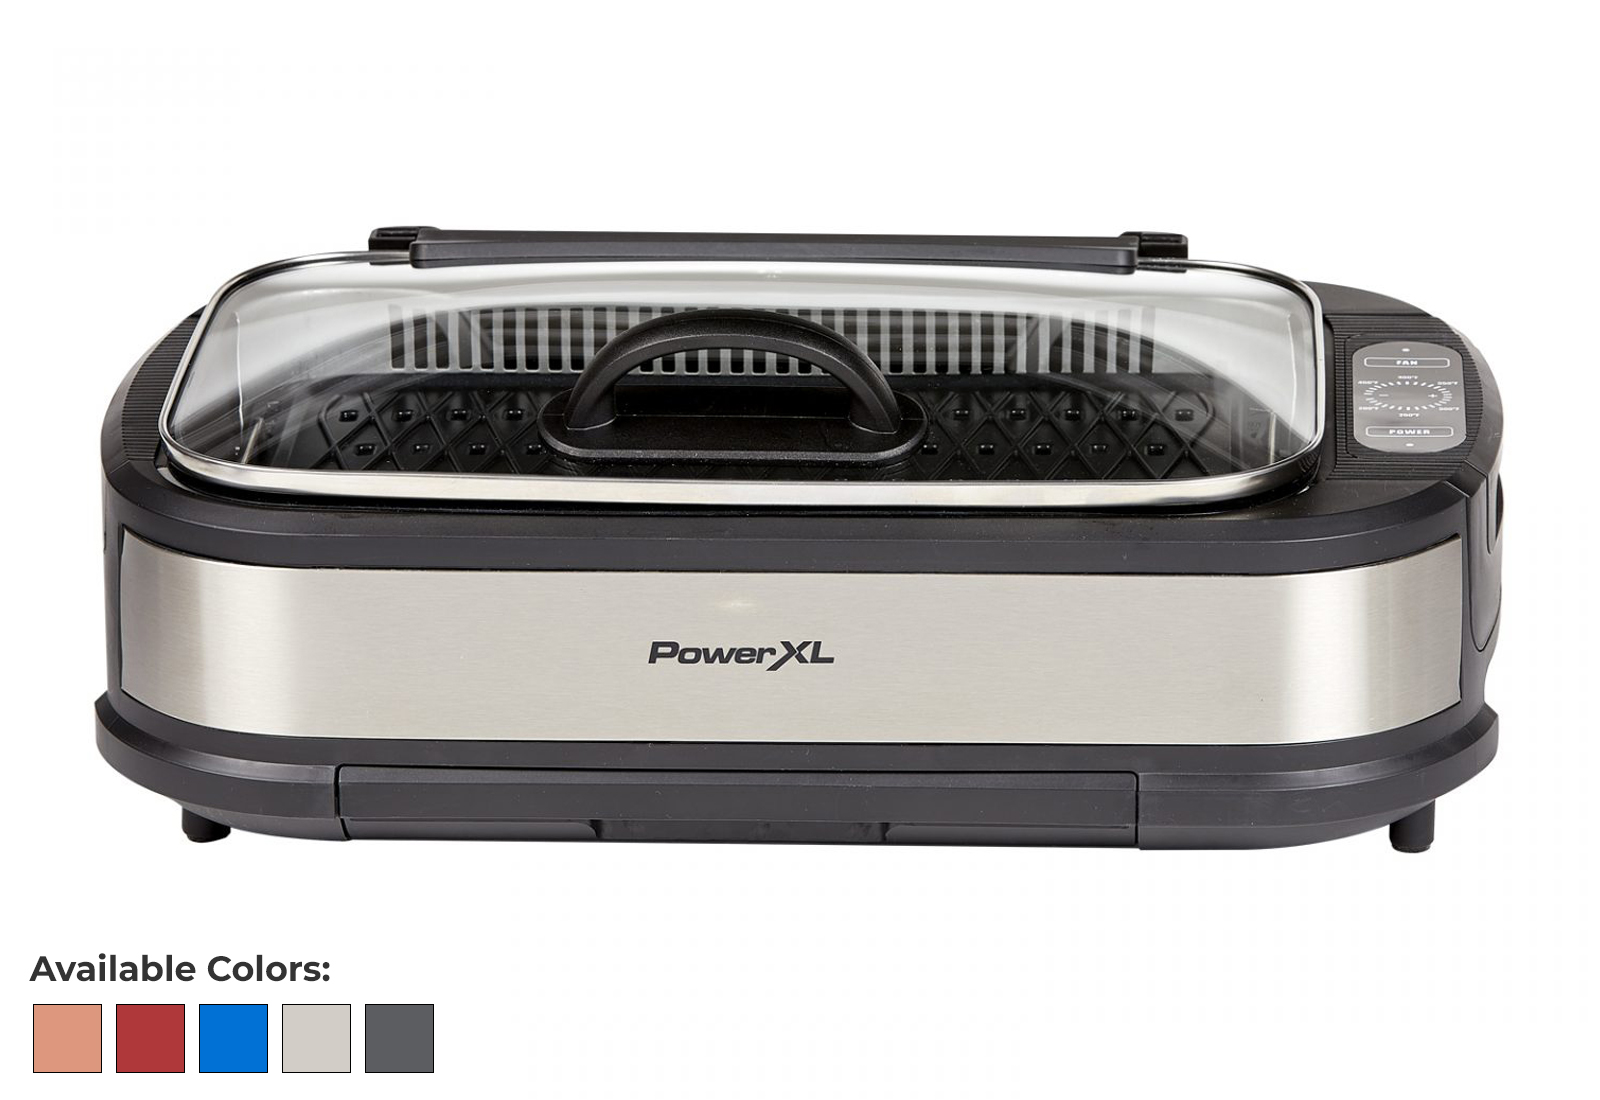 PowerXL Smokeless Grill Pro Product Image